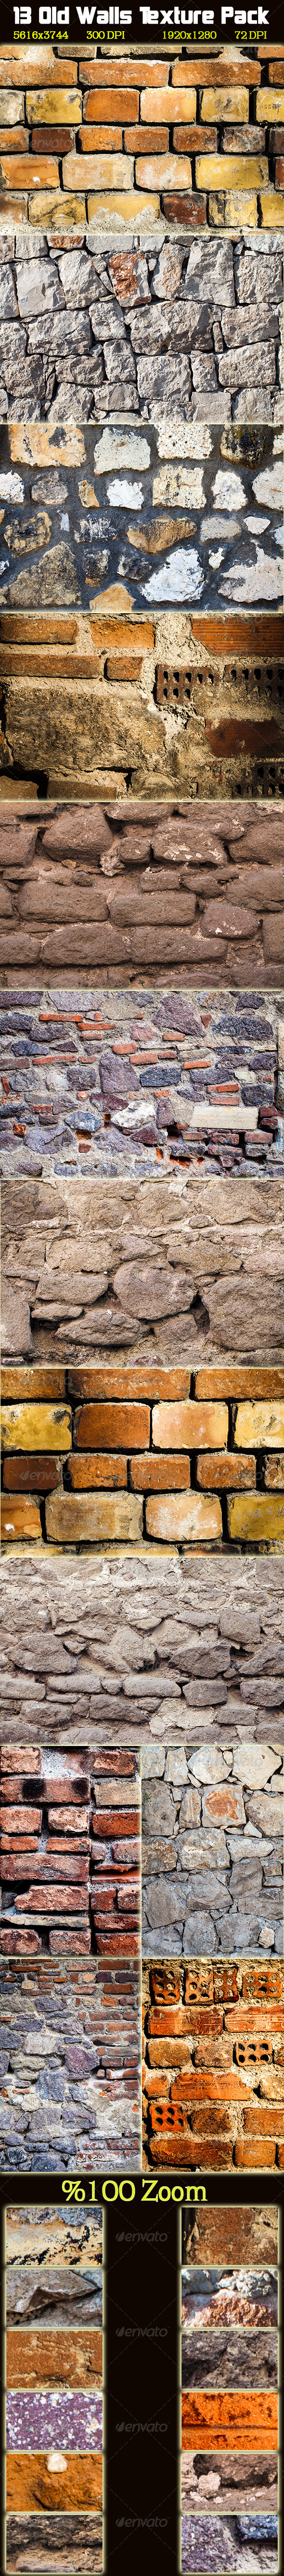 13 Old Wall Texture Pack - Stone Textures